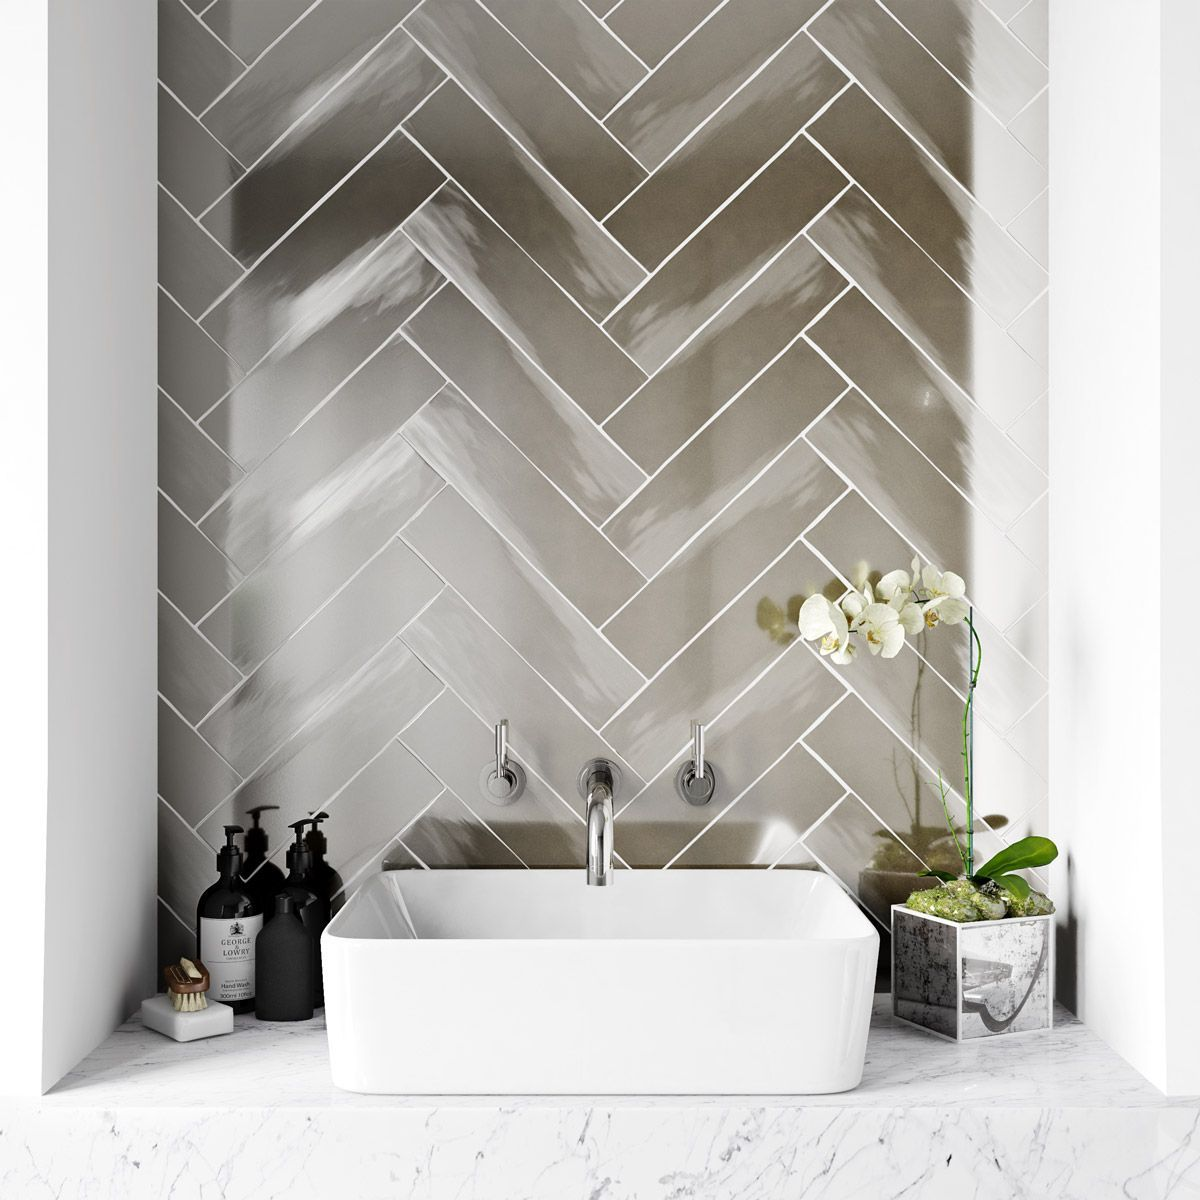 How To Decorate Ceramic Tiles Metallic Wall Tiles Silver Walls